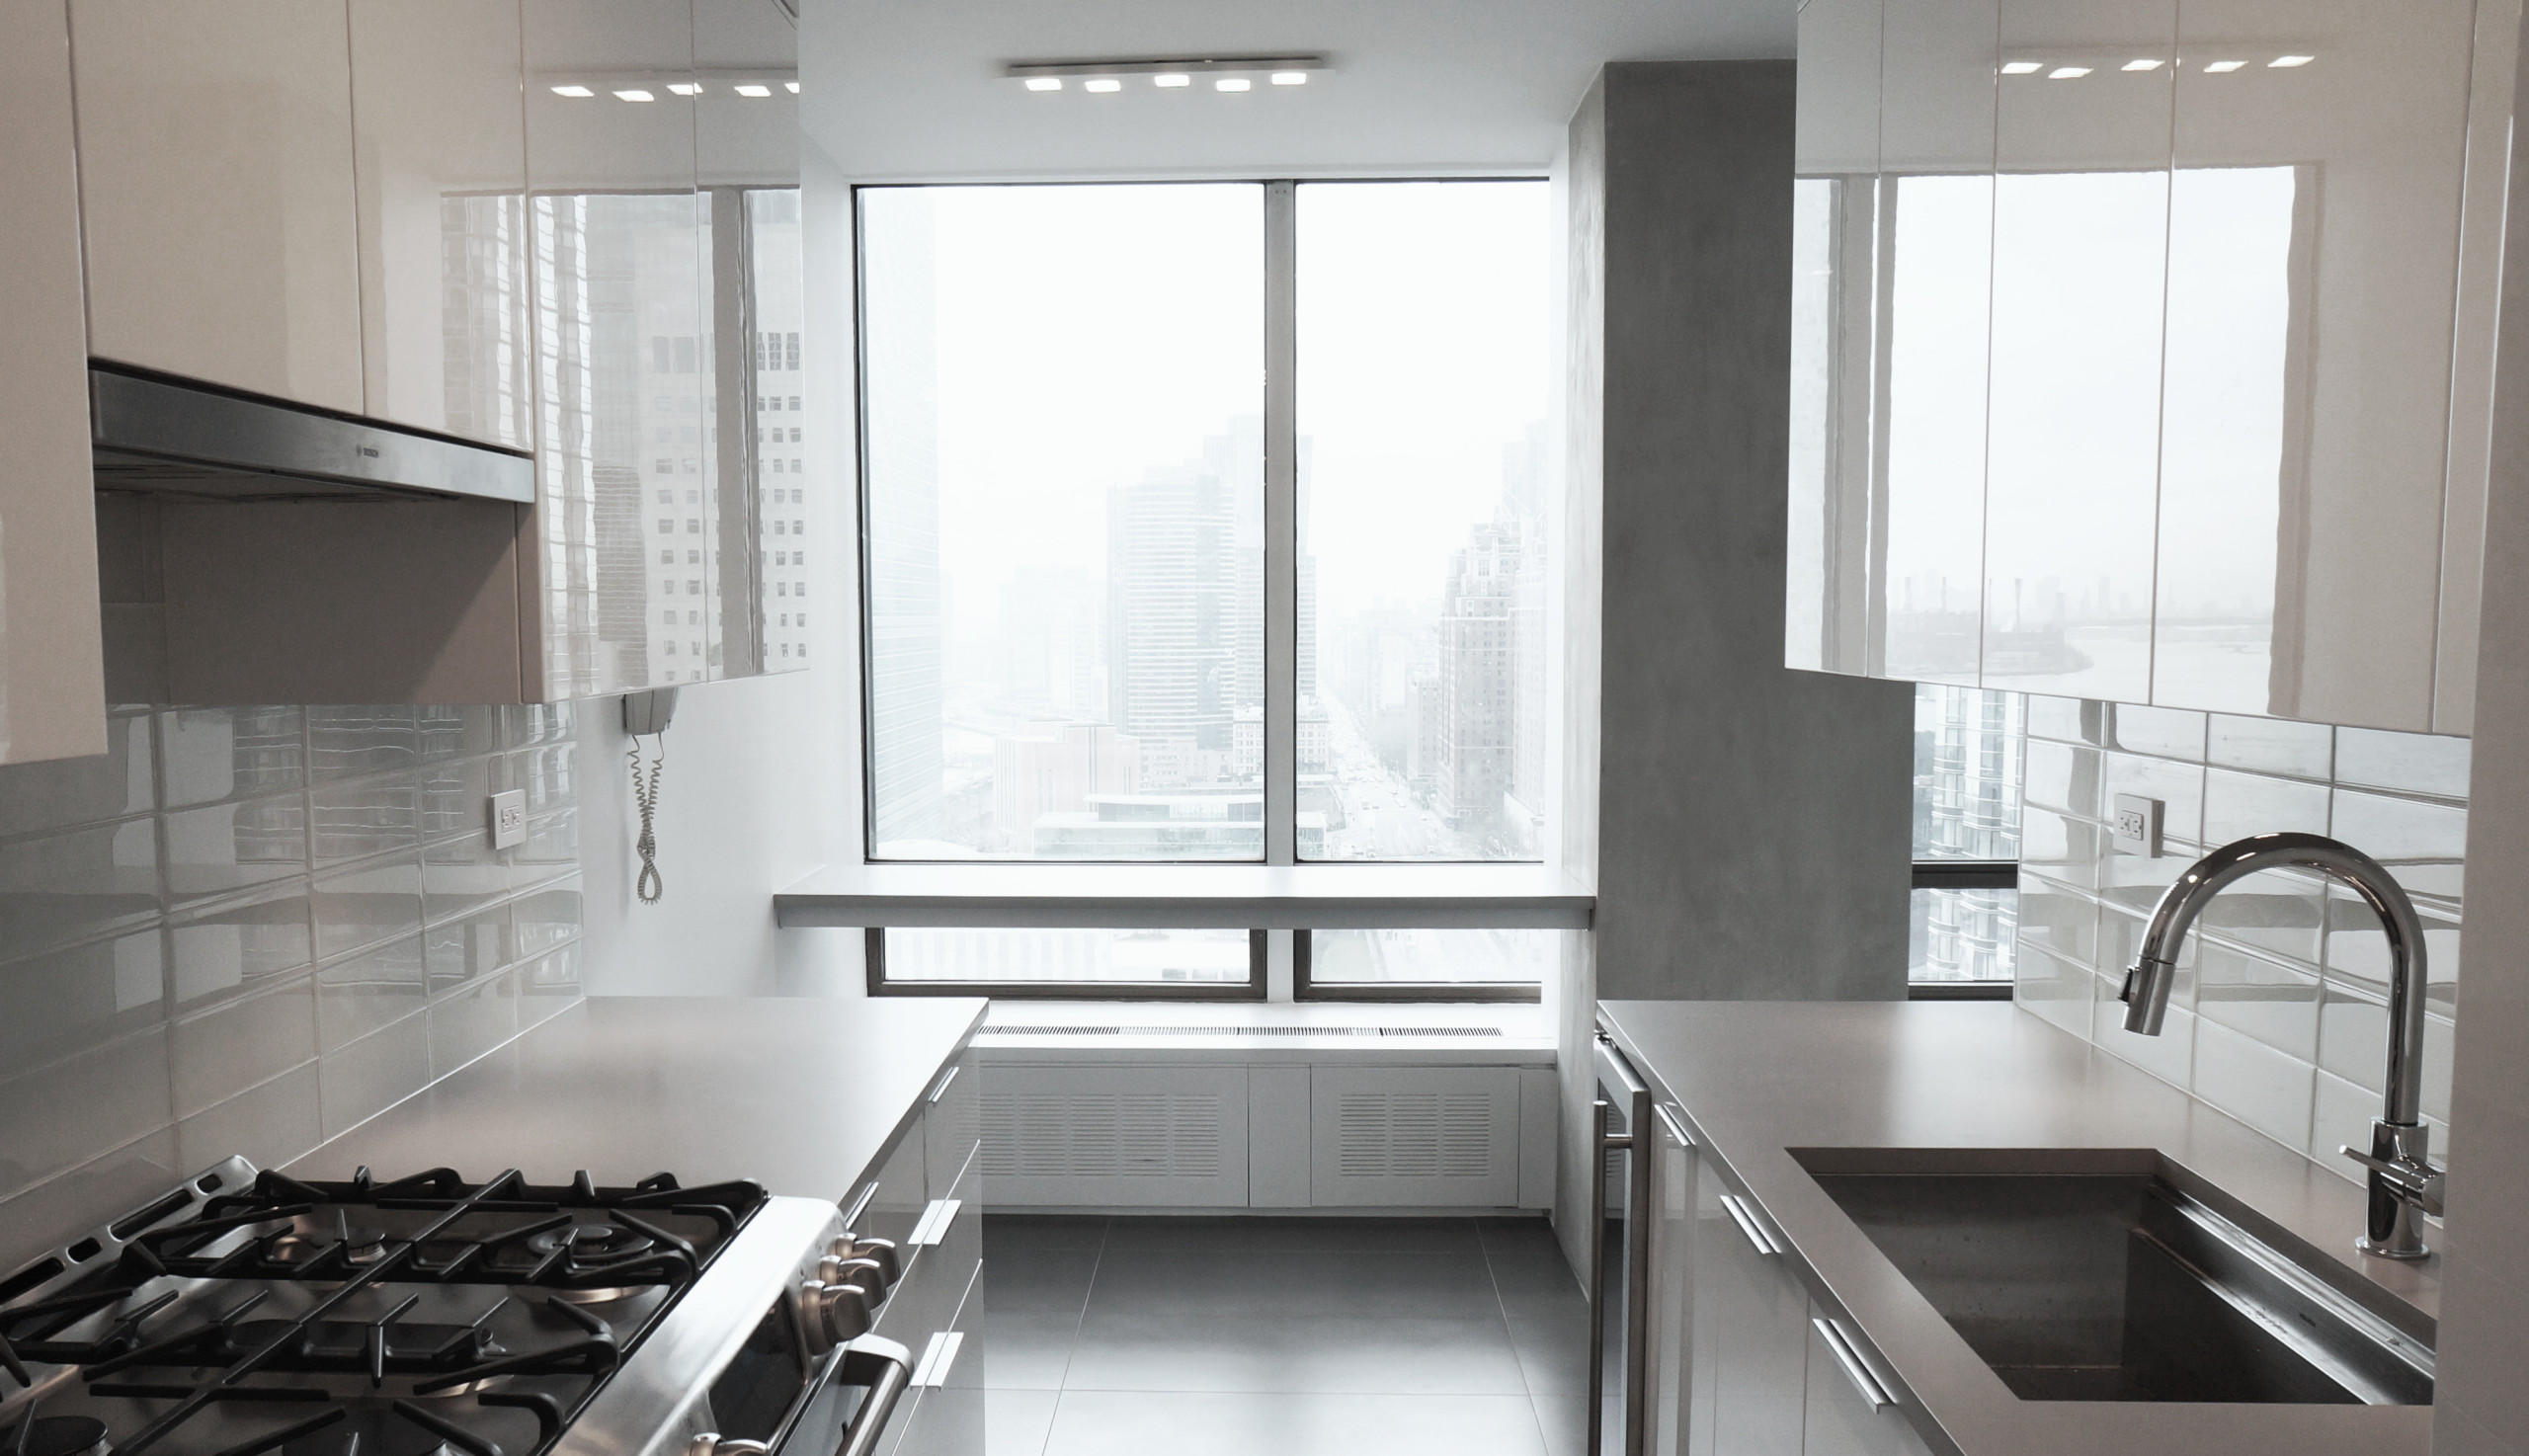 UN Plaza - Midtown East New York - Kitchen with a view